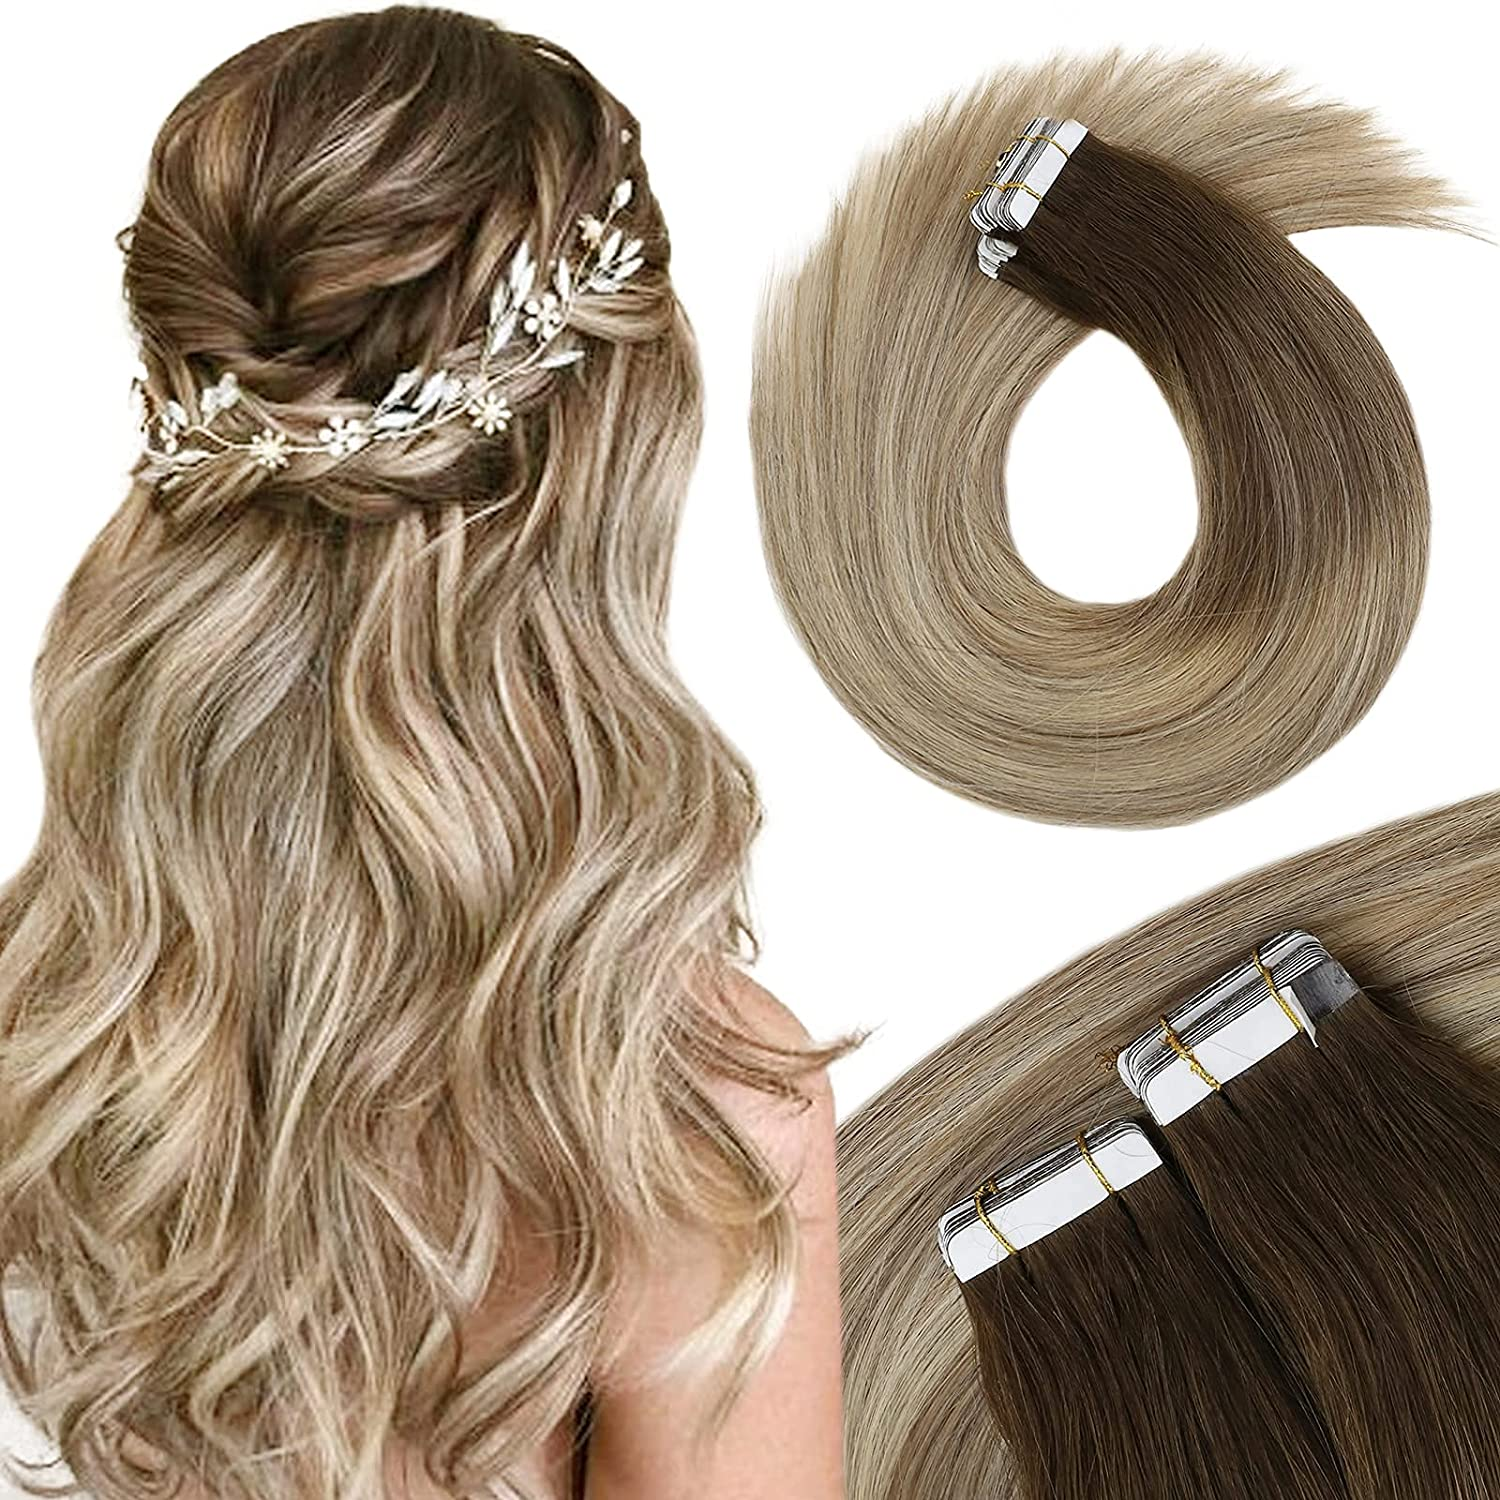 VeSunny Tape Max 49% OFF in Hair Extensions Trust Human Ombre Blonde L 24inch